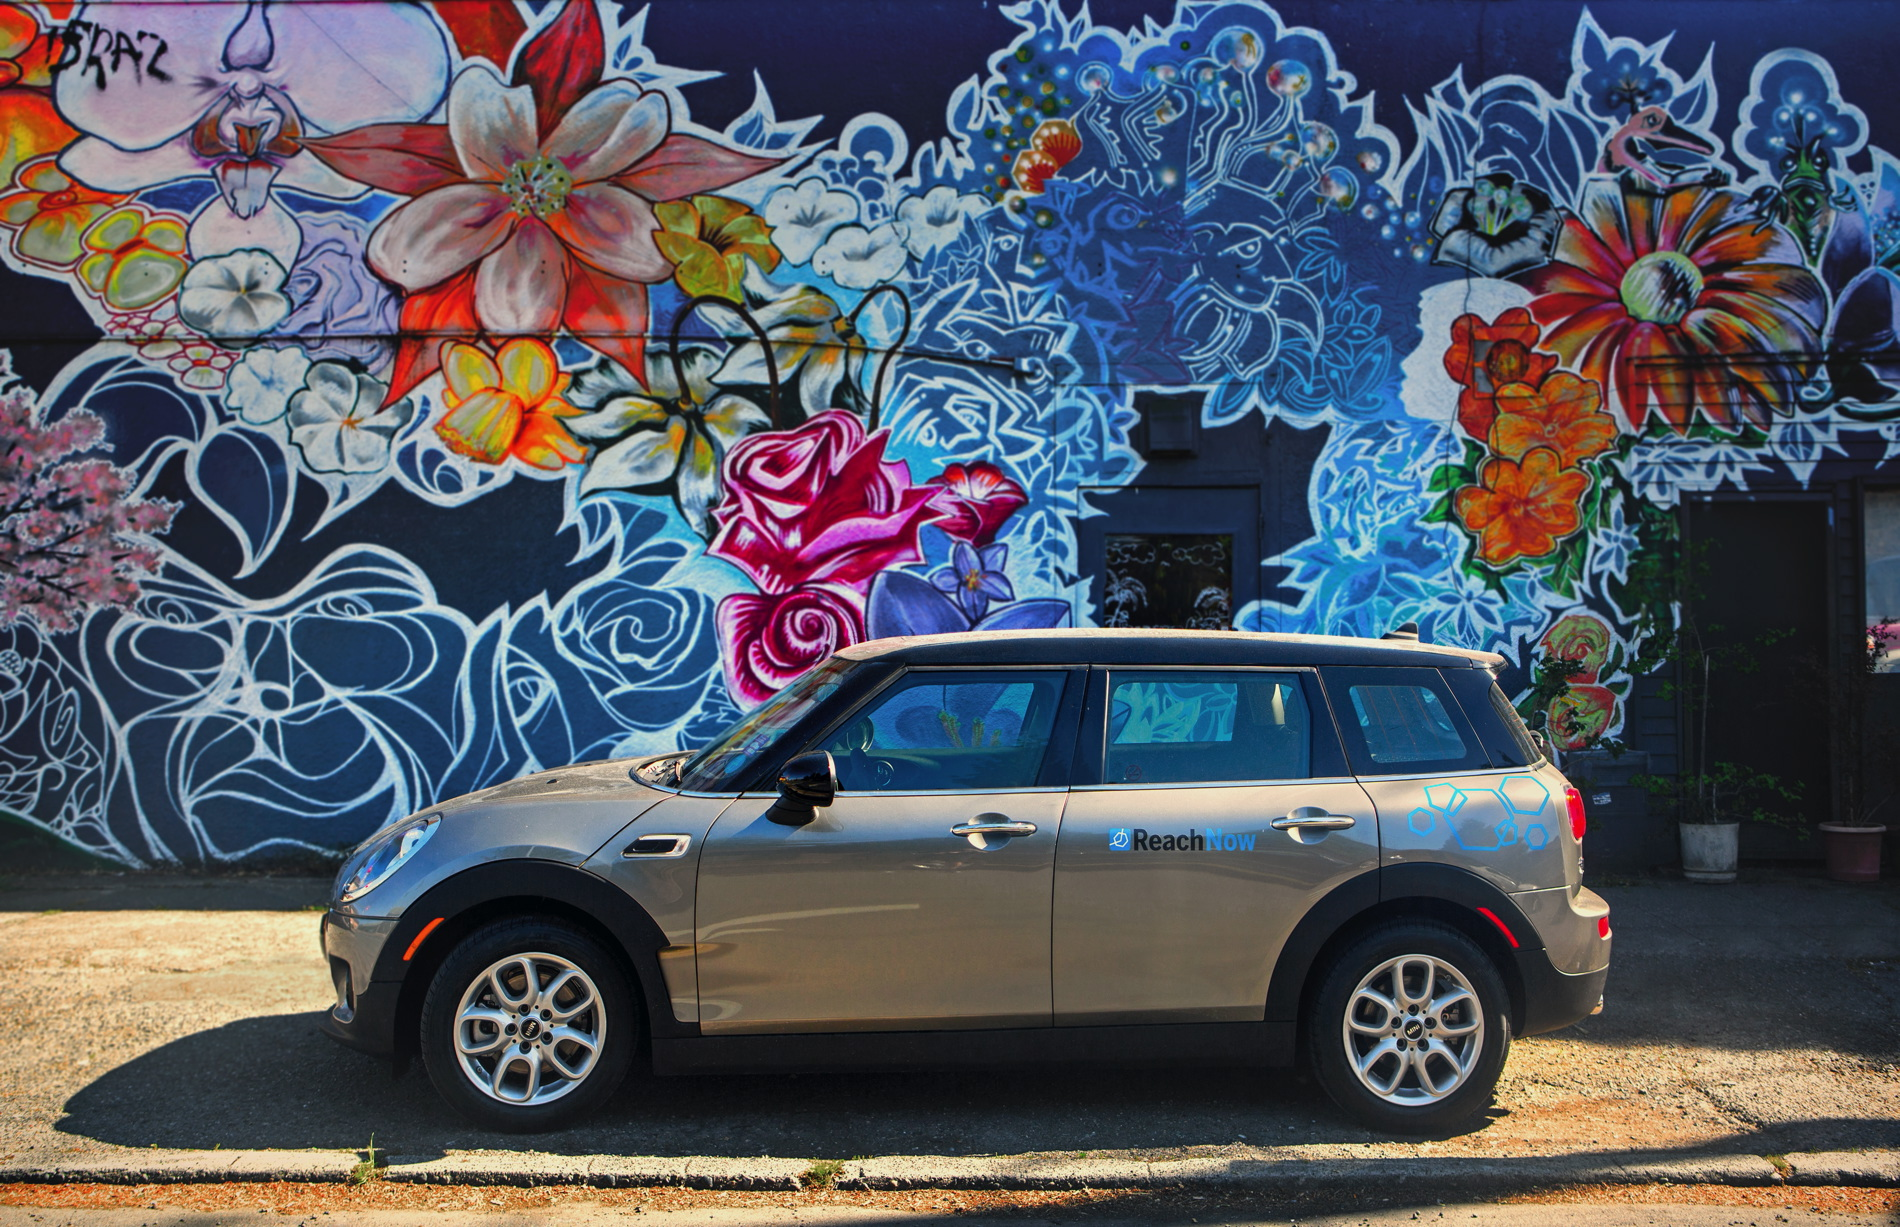 ReachNow BMW Group s Car Sharing Service Expands to Brooklyn